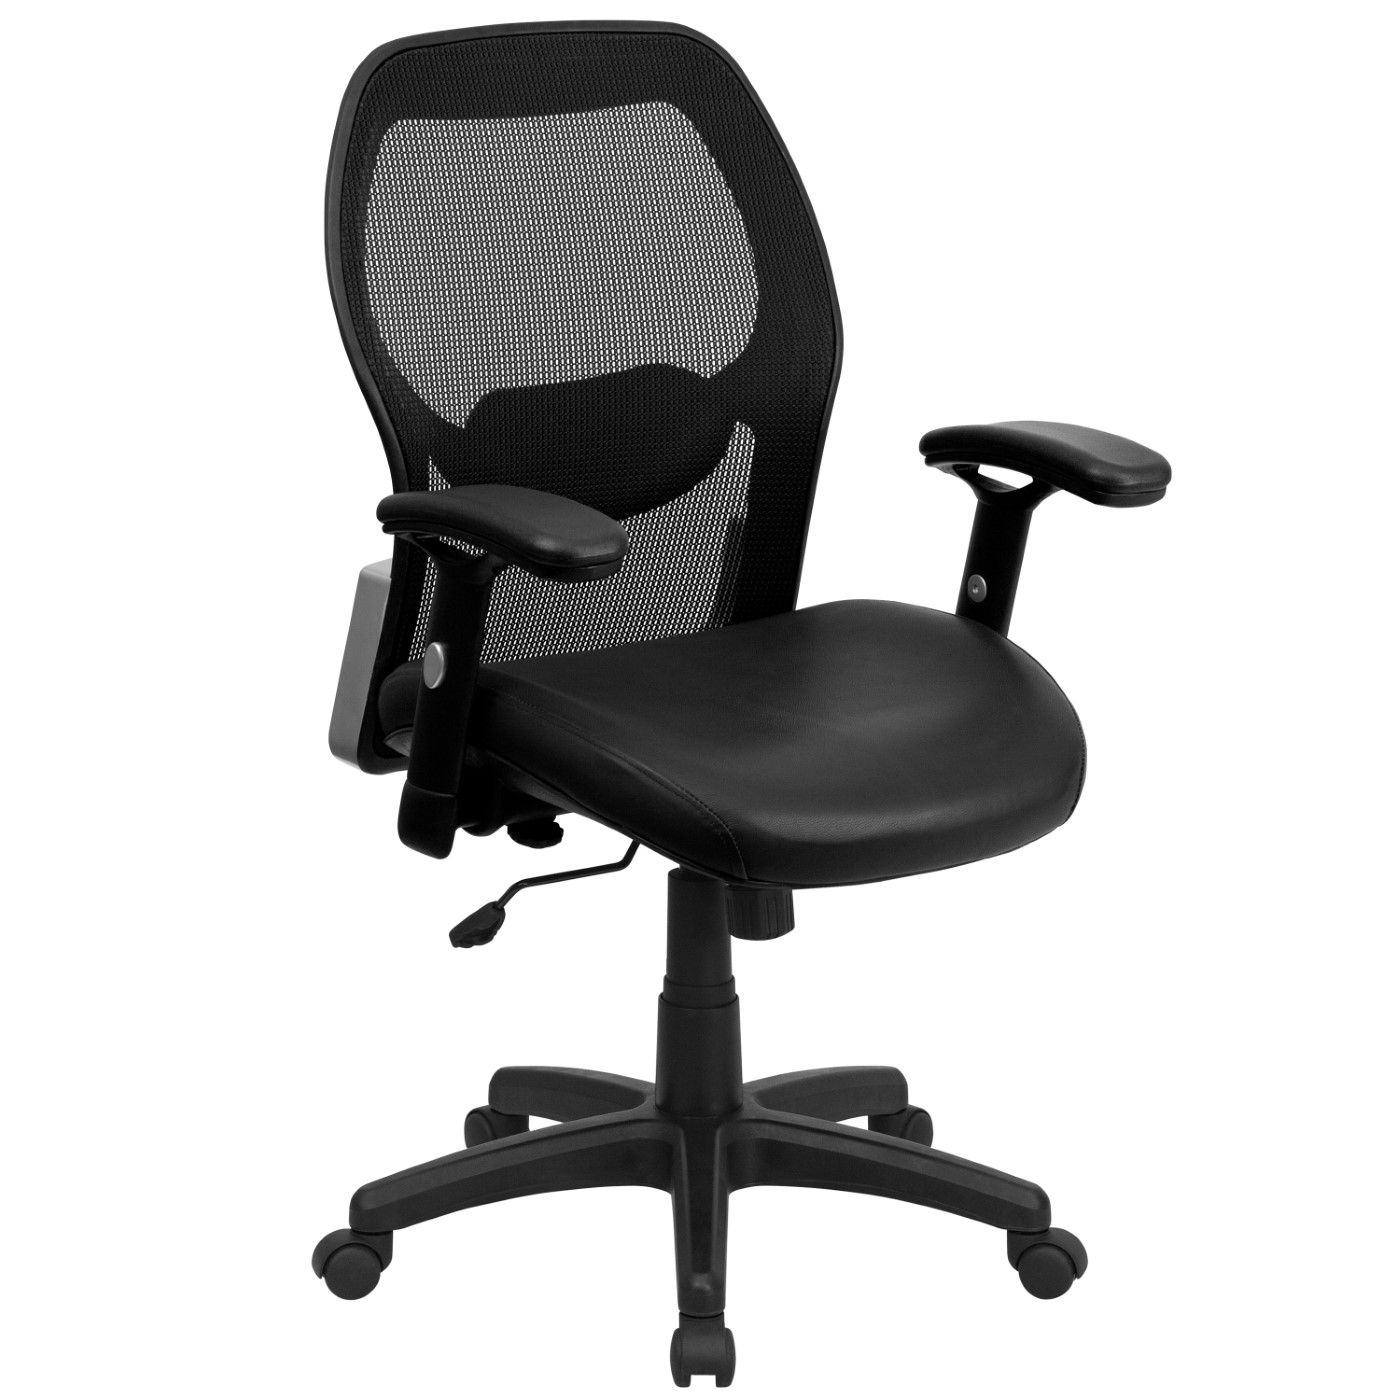 Mid-Back Black Super Mesh Executive Swivel Office Chair with LeatherSoft Seat and Adjustable Lumbar & Arms